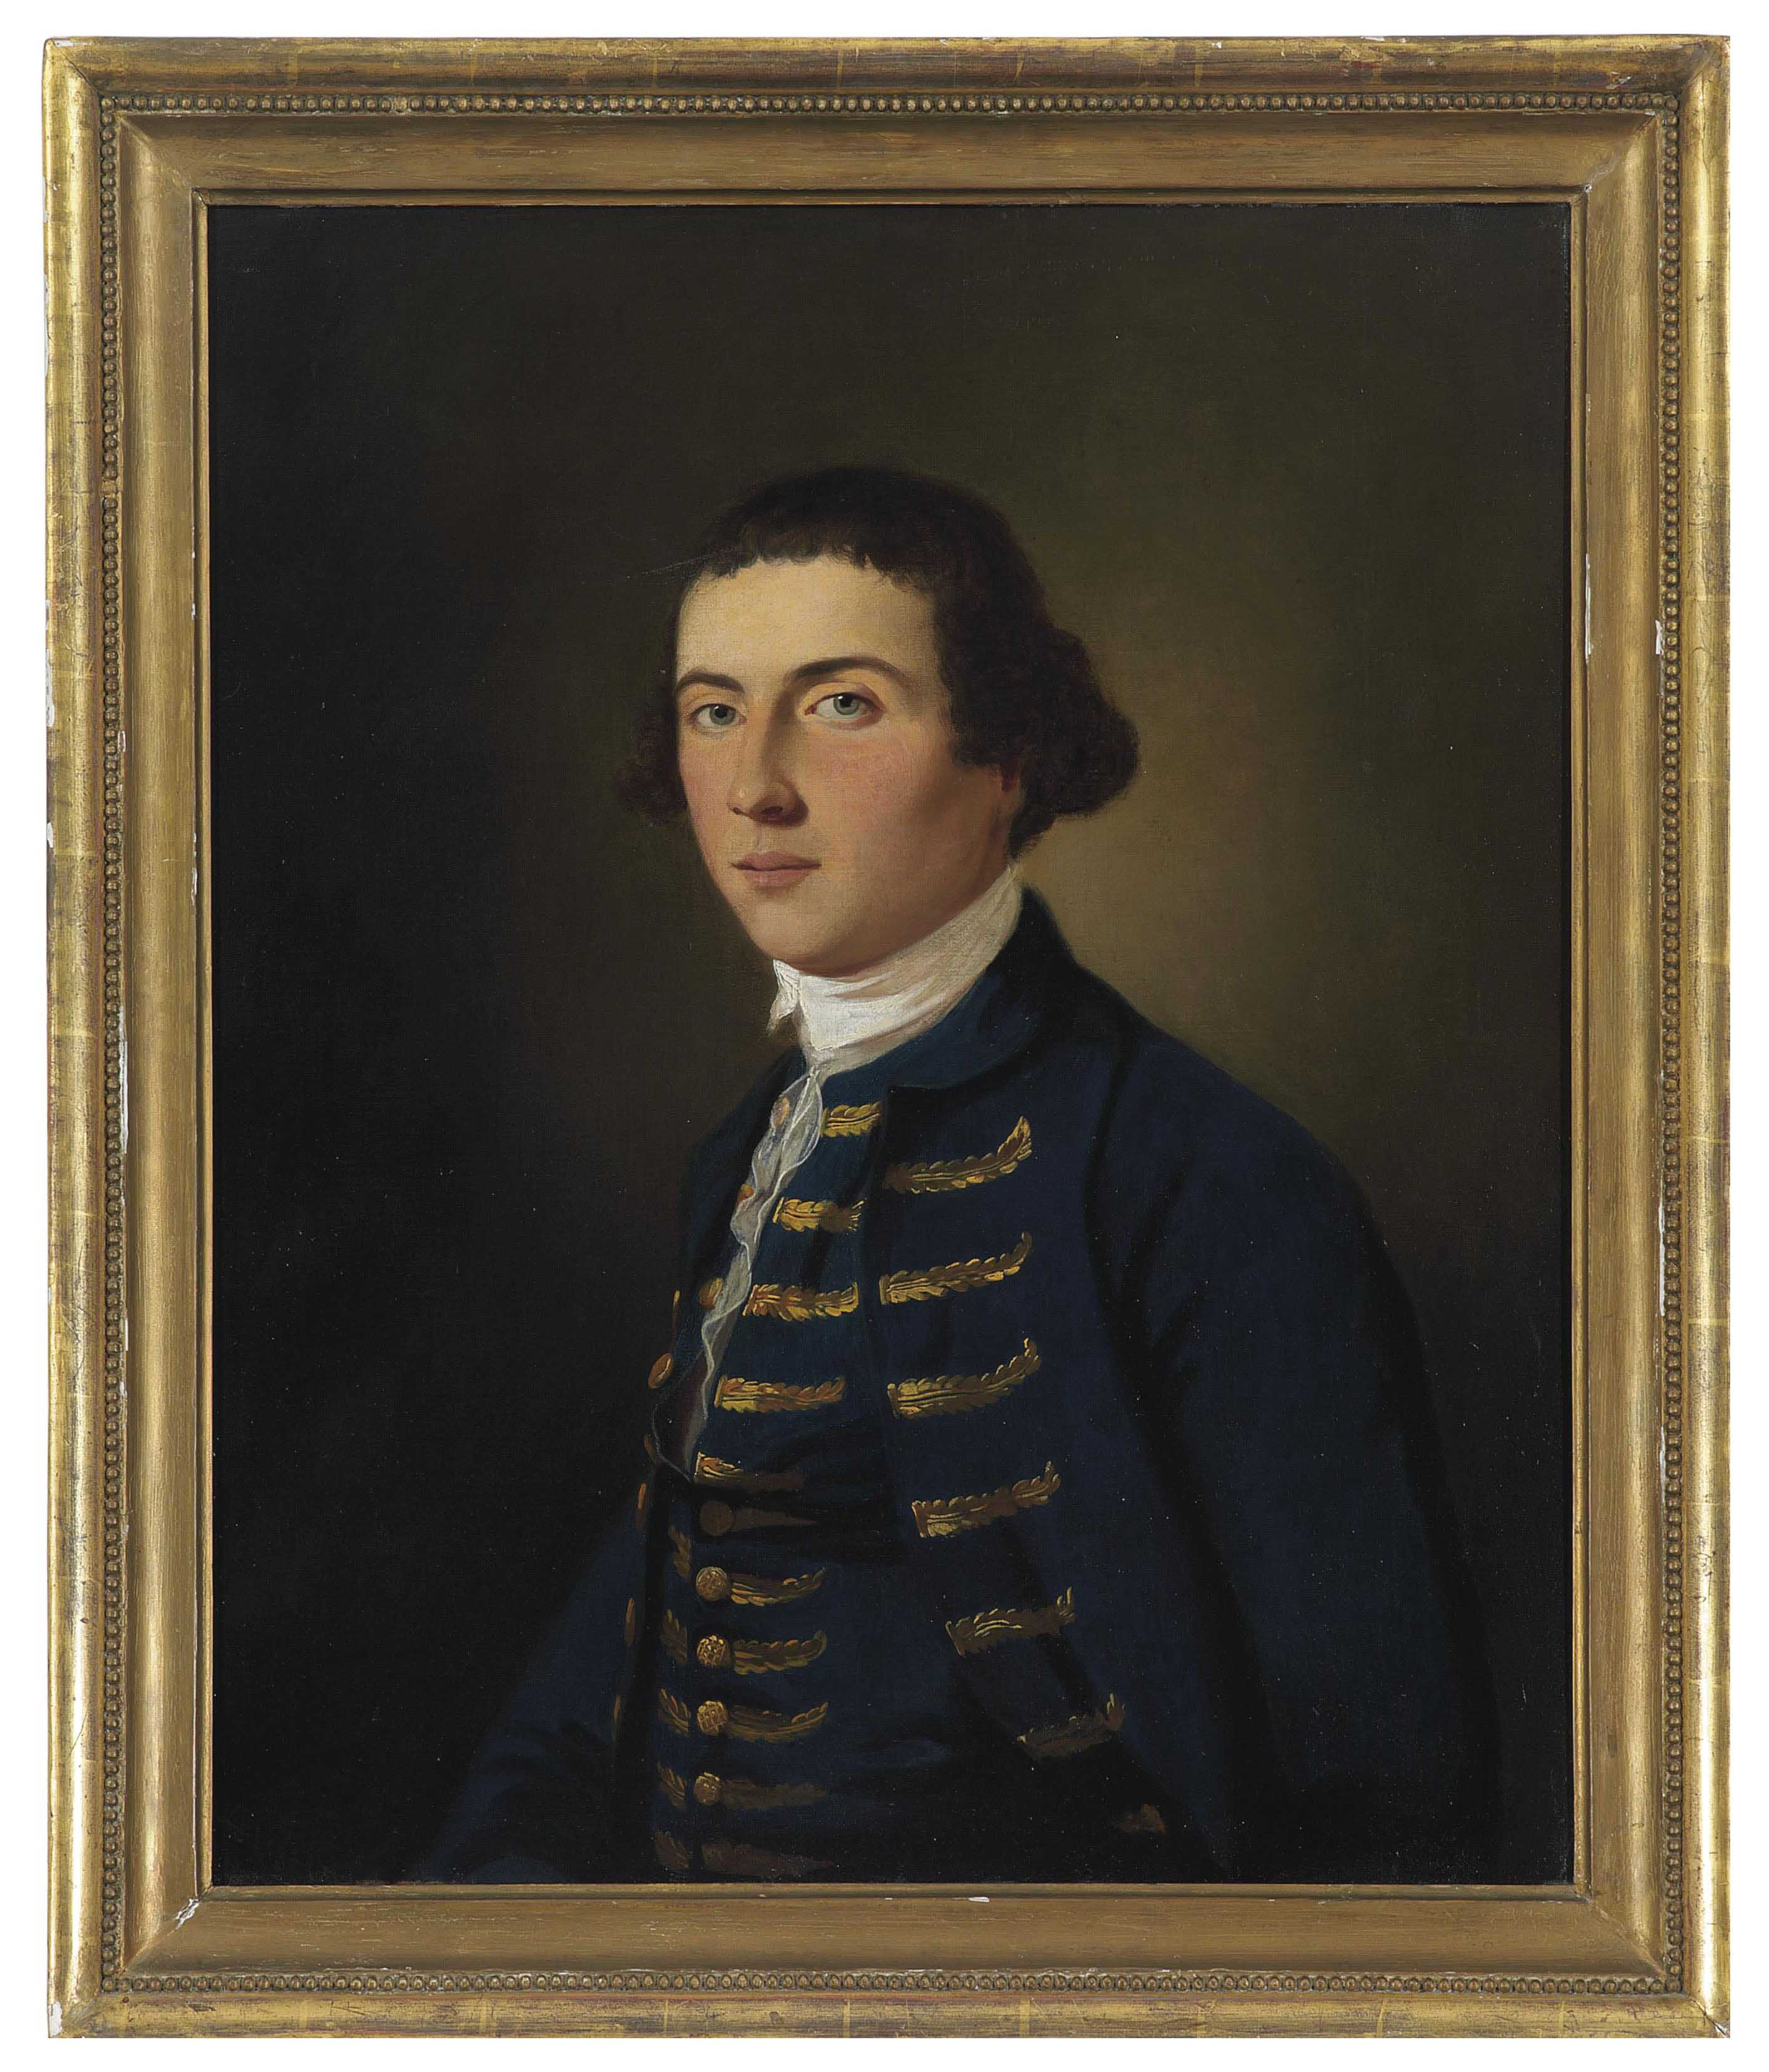 Portrait of a young man, half-length, in blue coat and waistcoat with gold embroidery